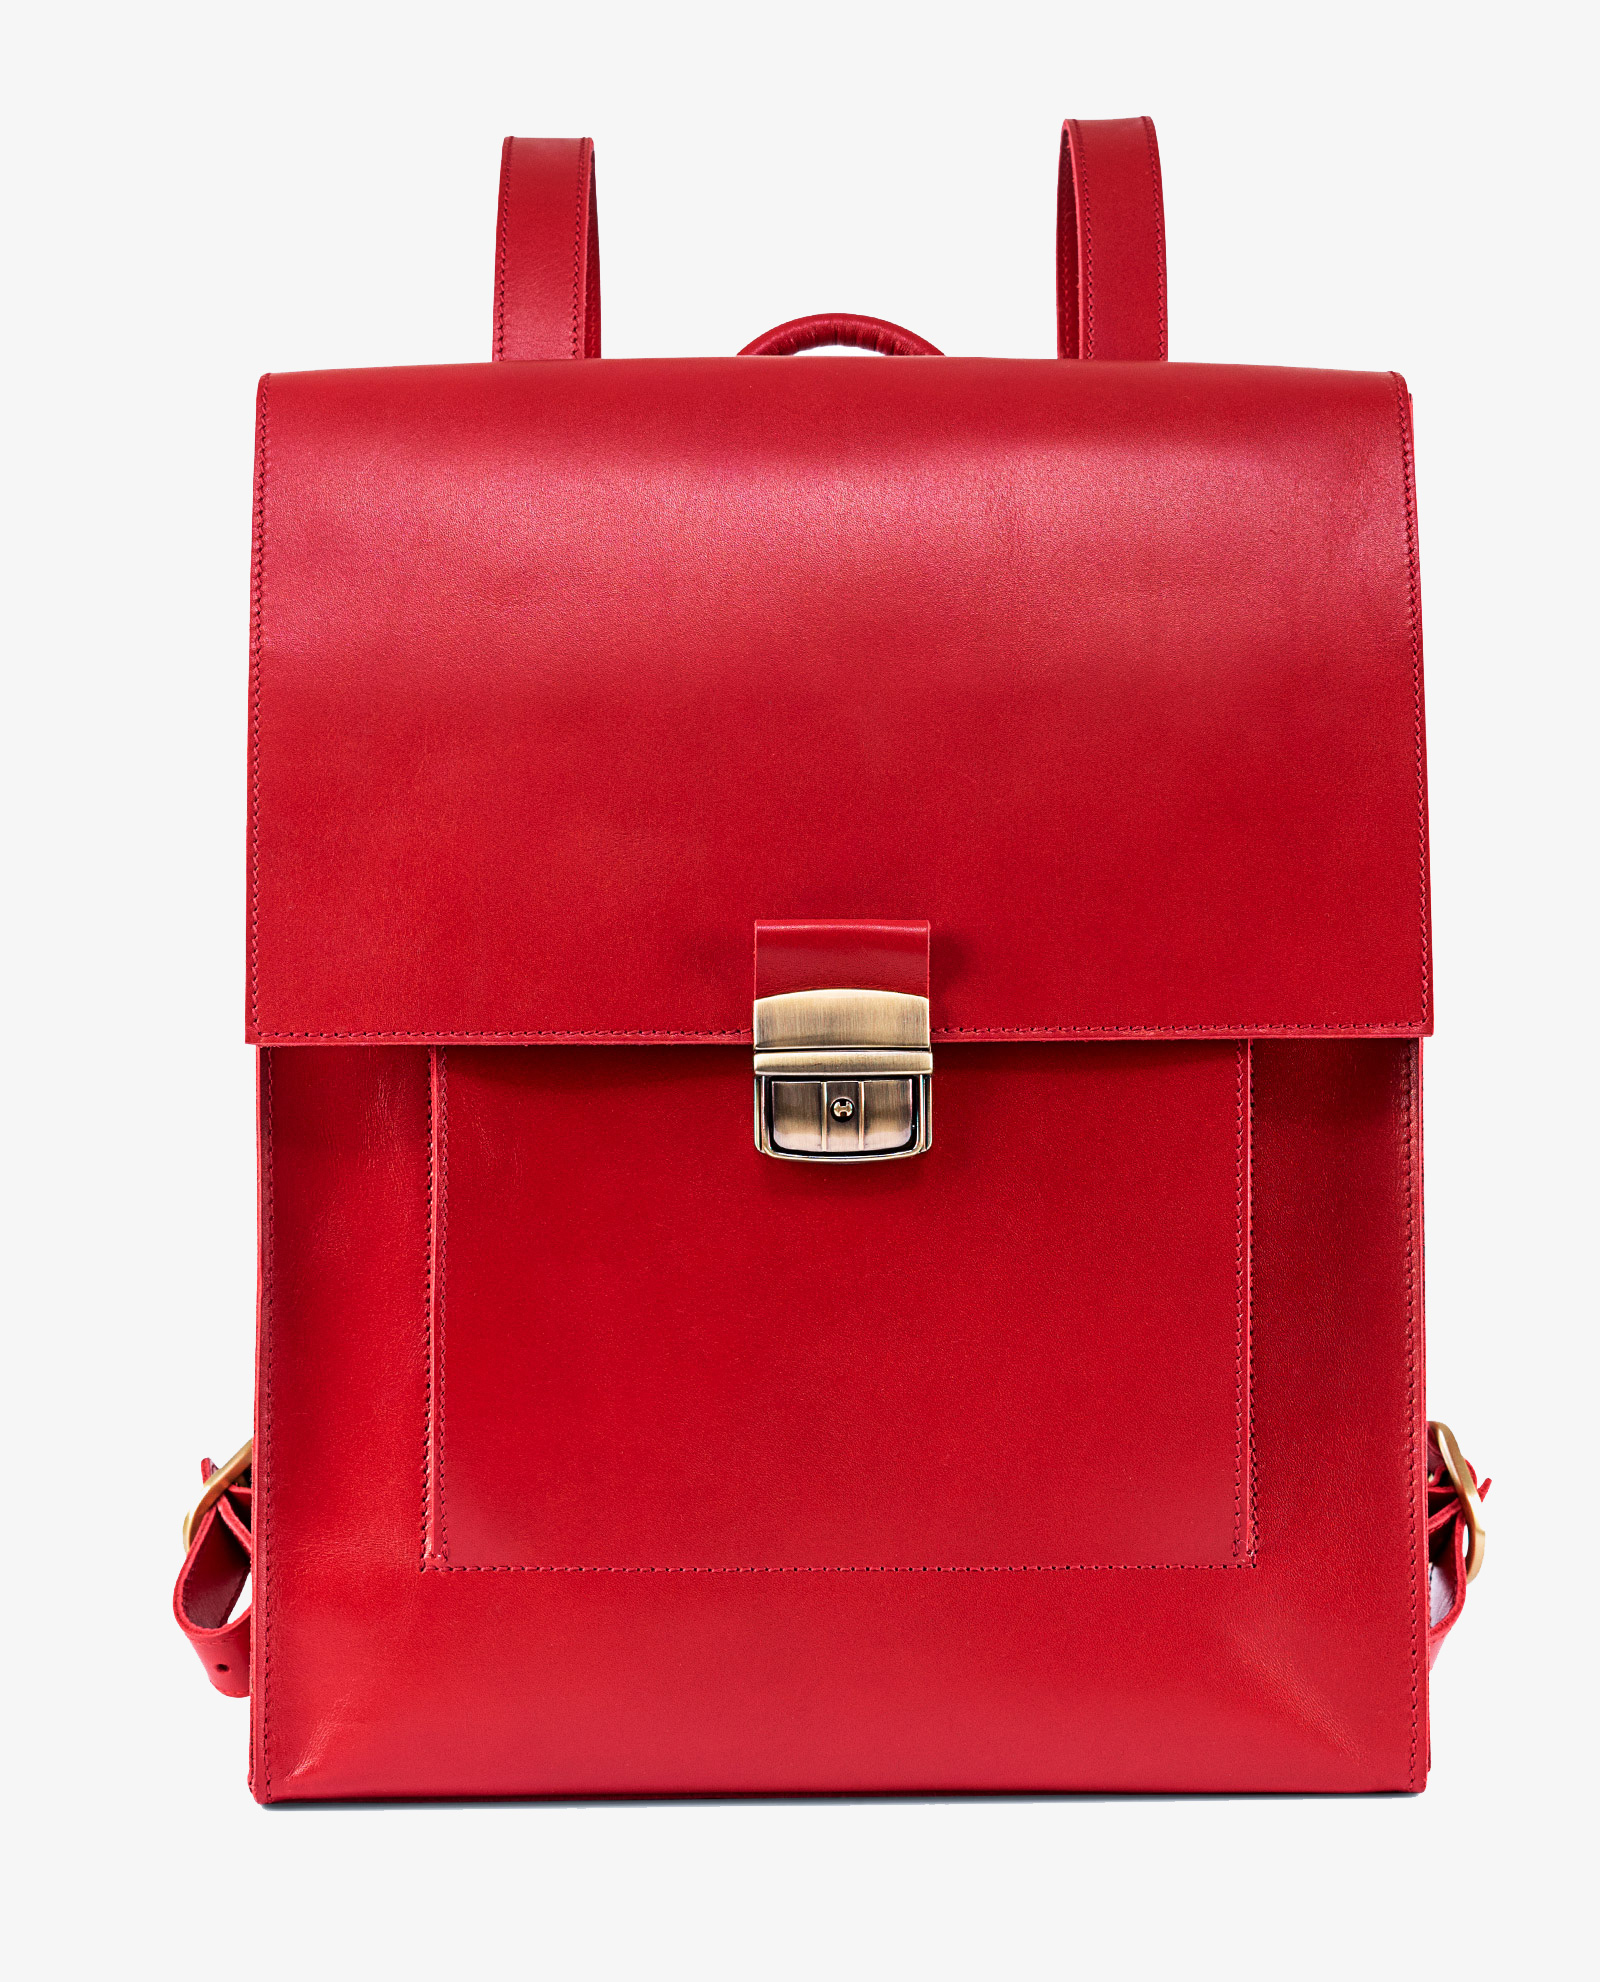 16c40b085f Red Leather Backpack Handbags and Purses - eBags.com